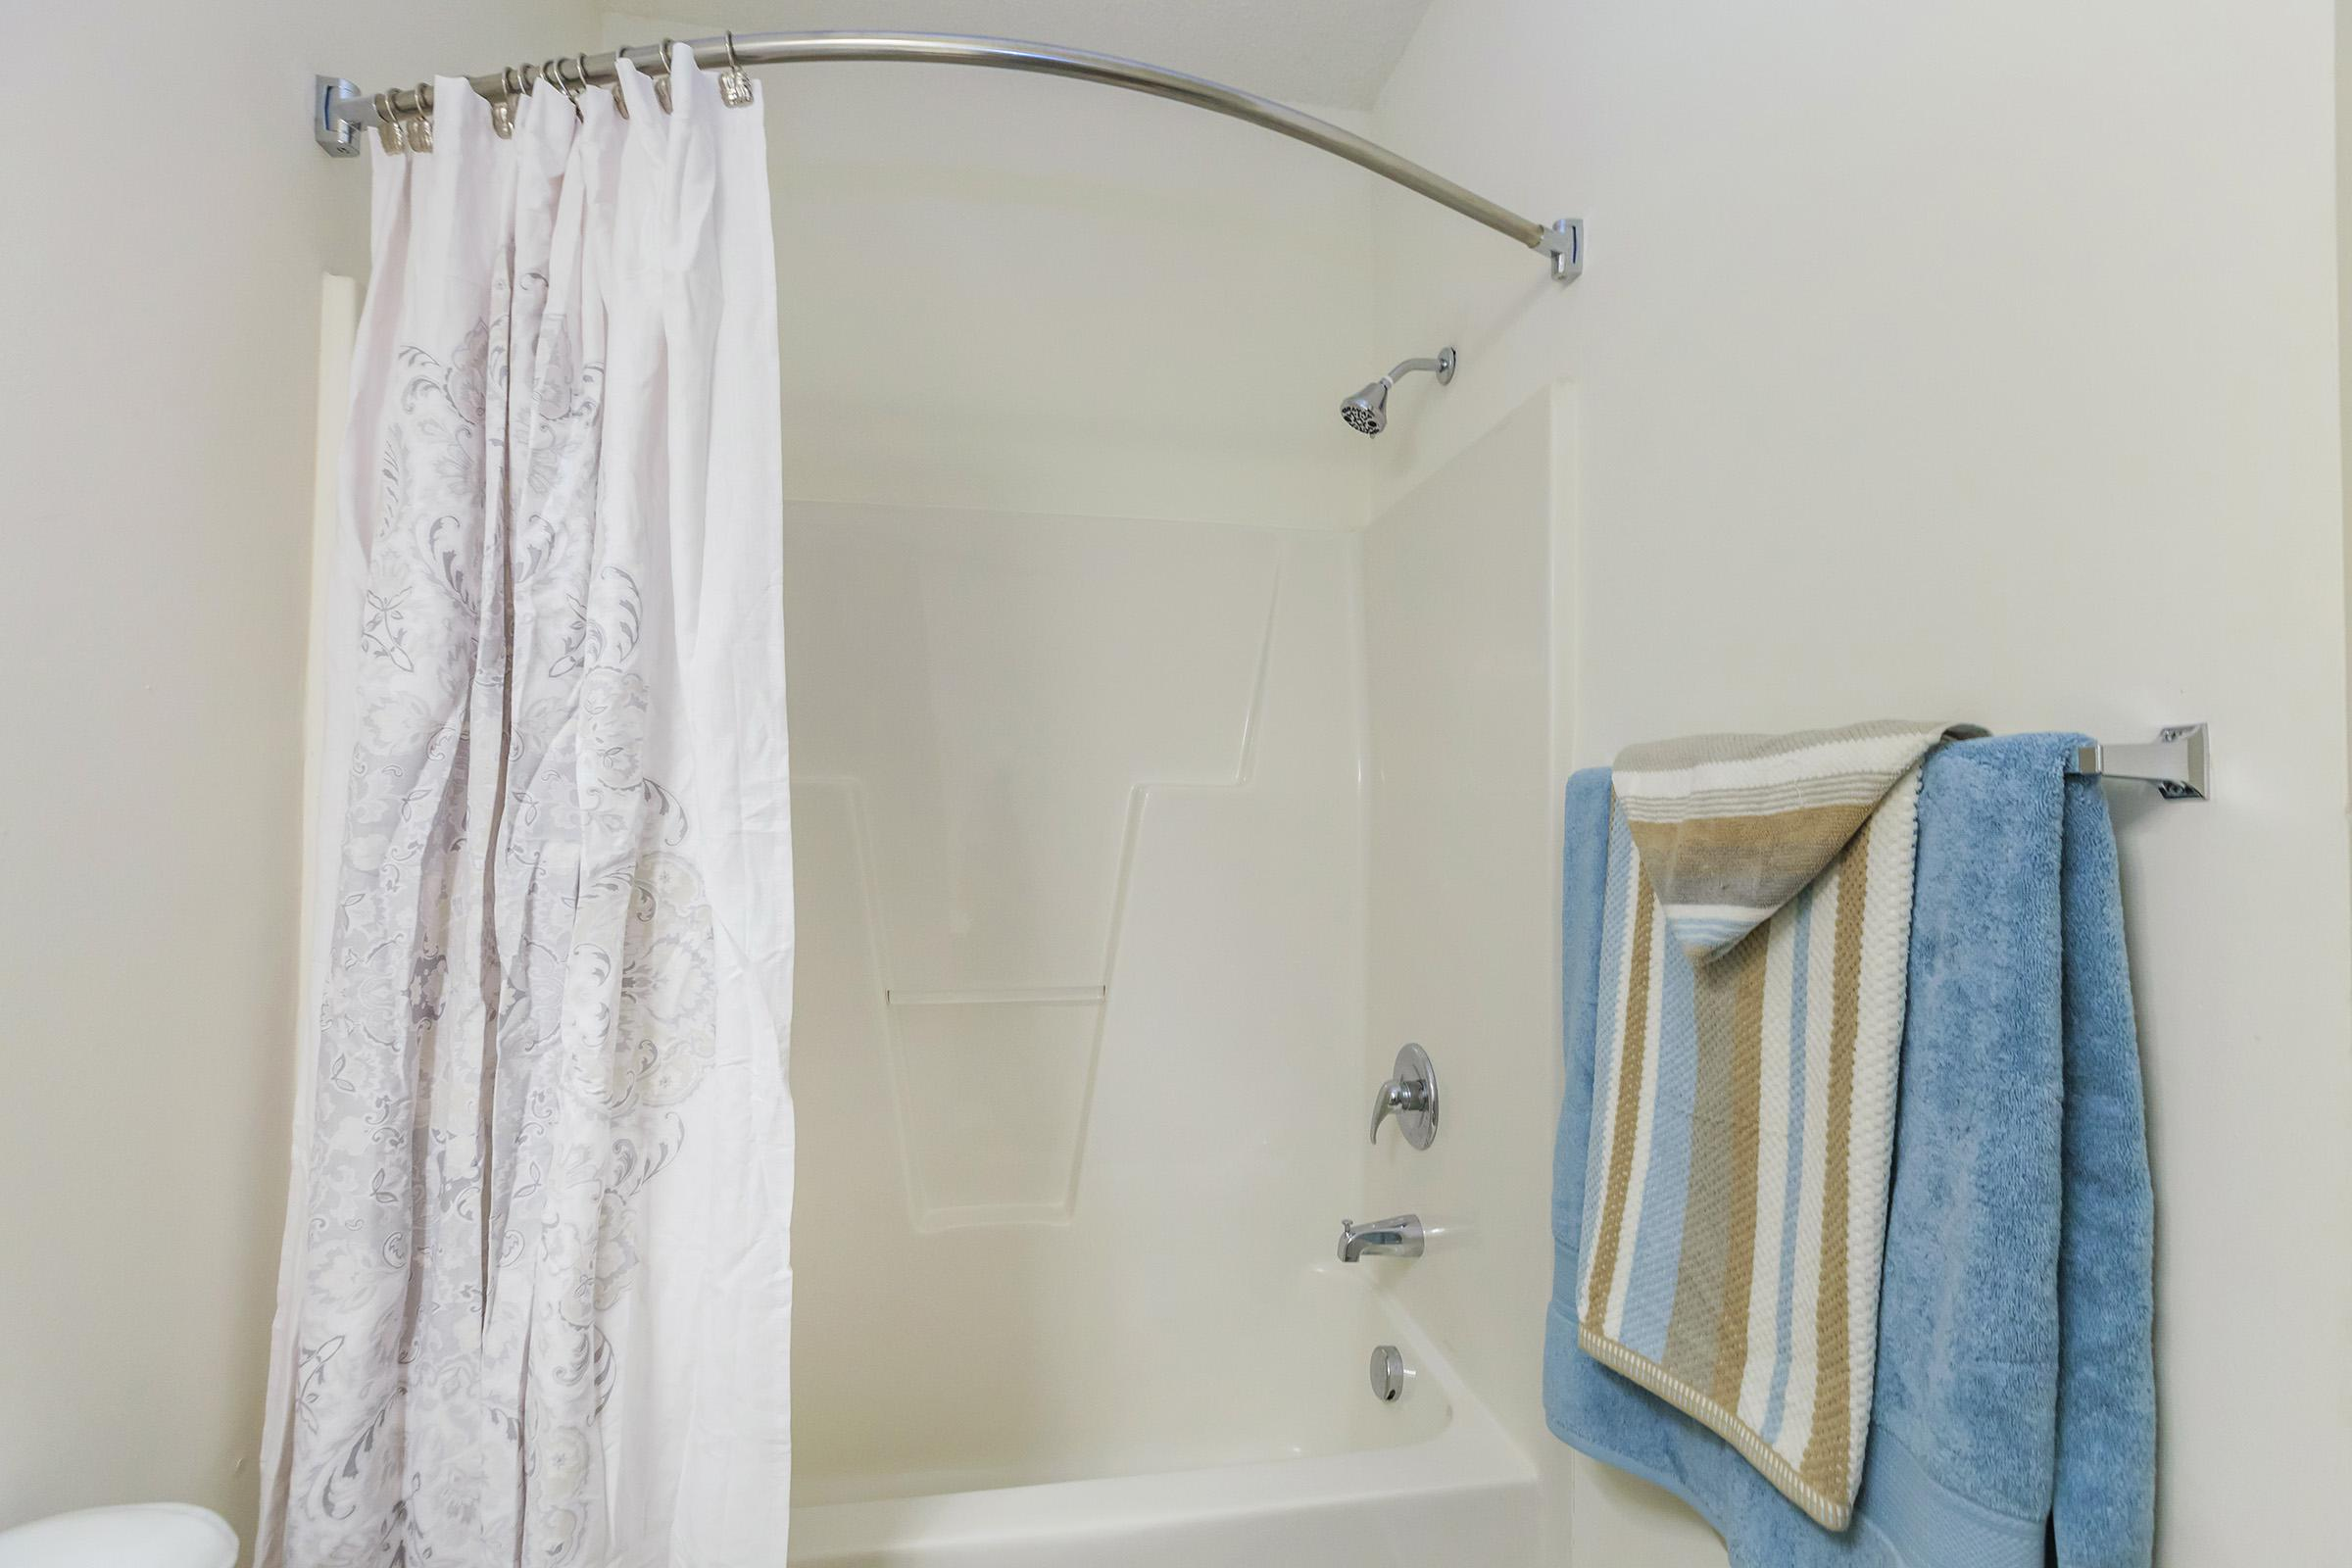 a white tub sitting next to a shower curtain